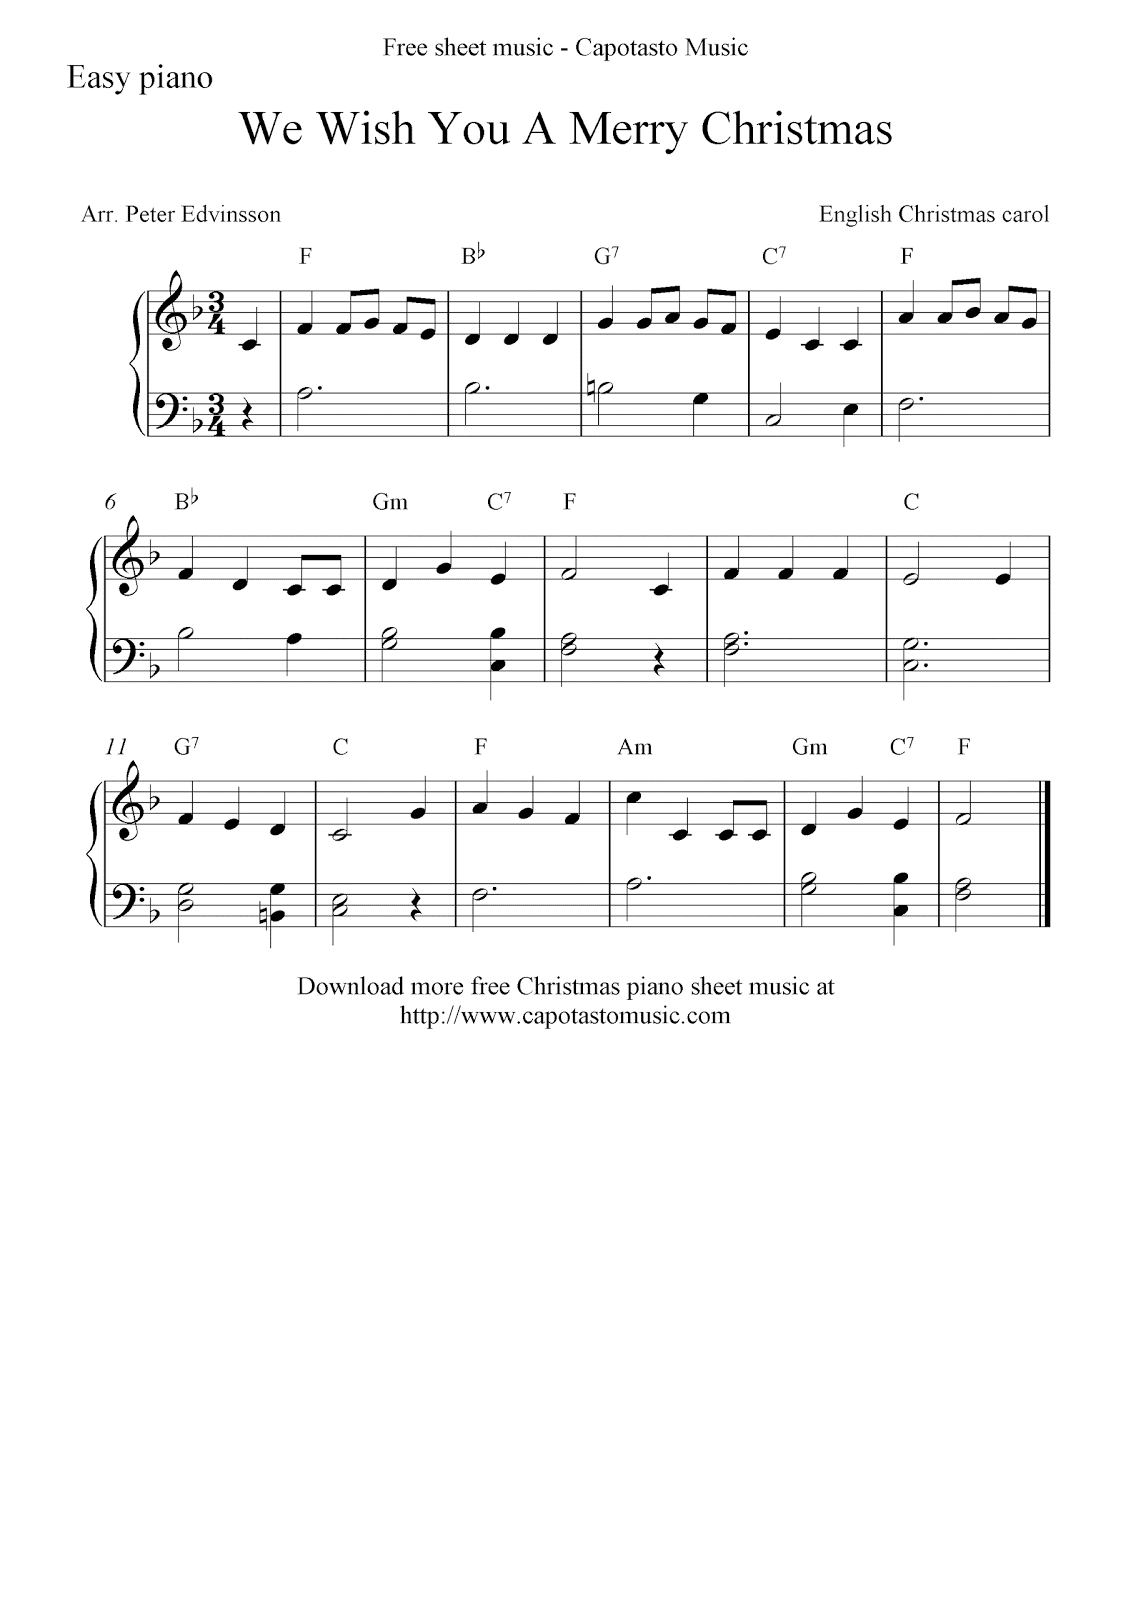 We Wish You A Merry Christmas Piano.Free Christmas Sheet Music For Easy Piano We Wish You A